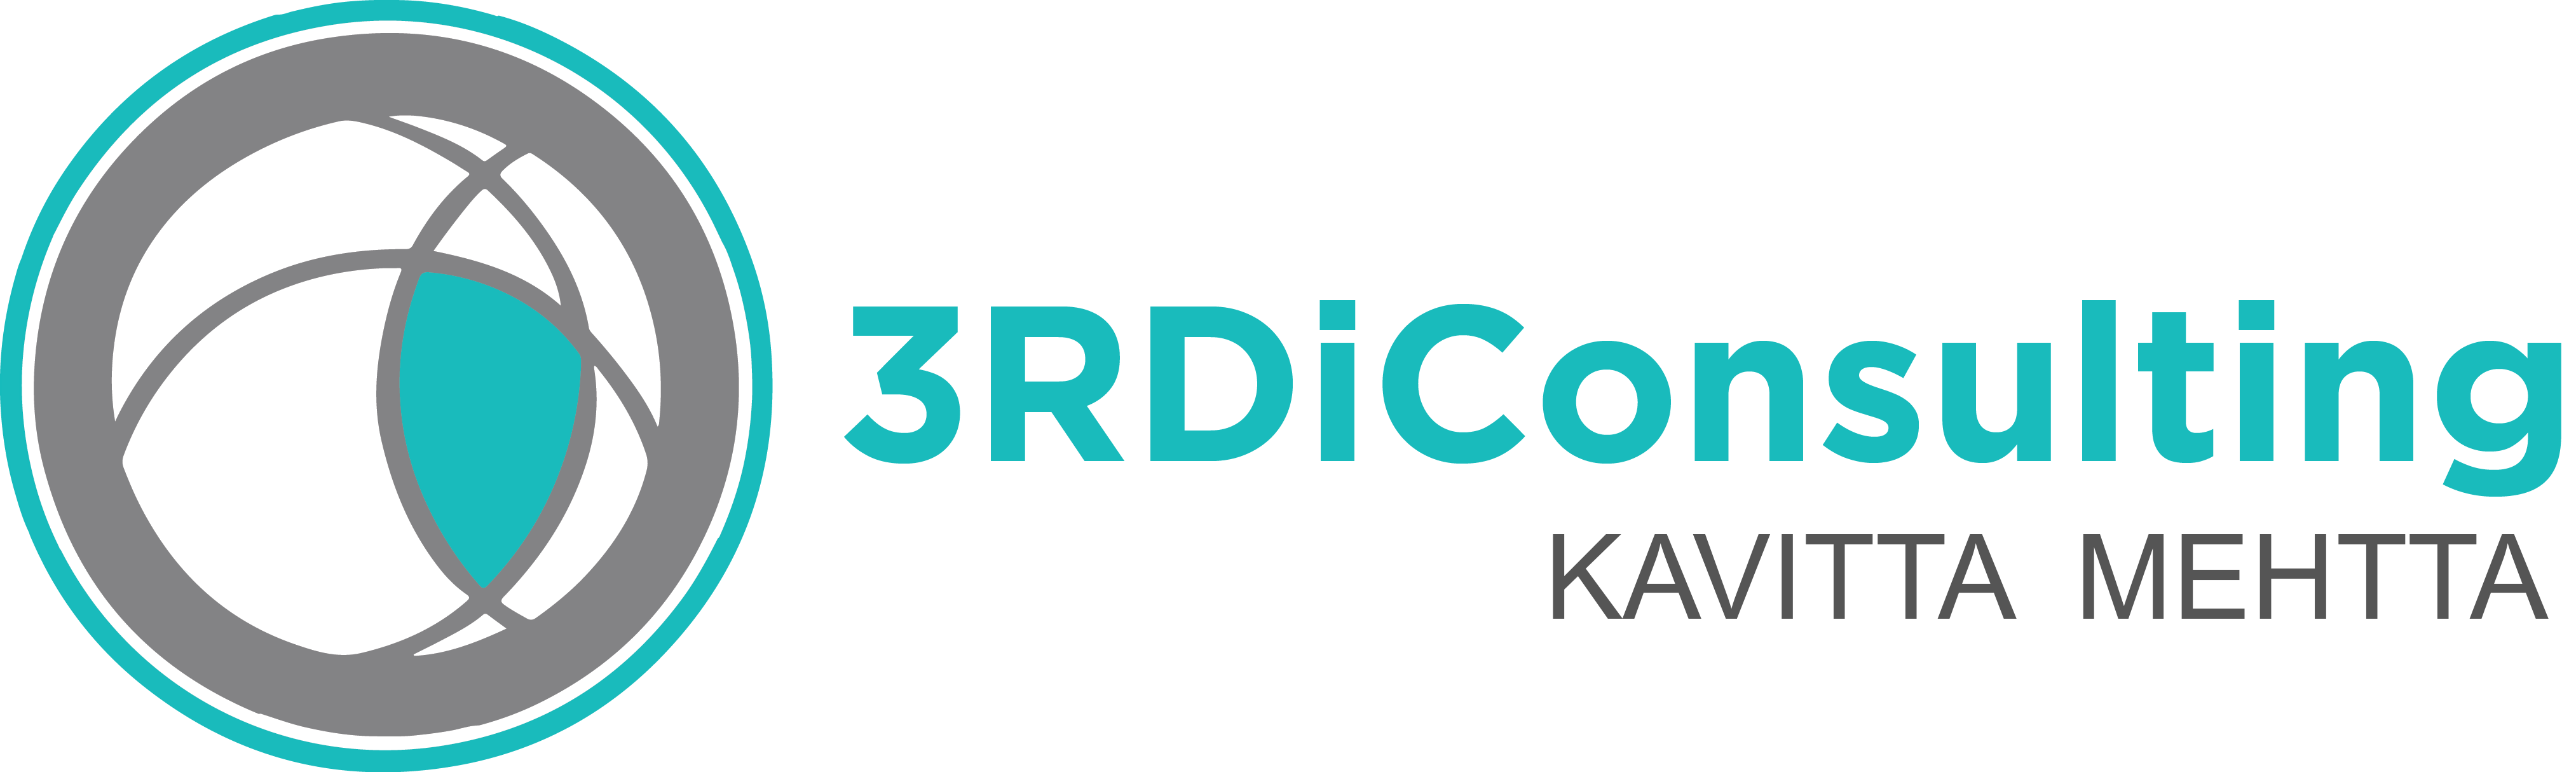 3RDiConsulting